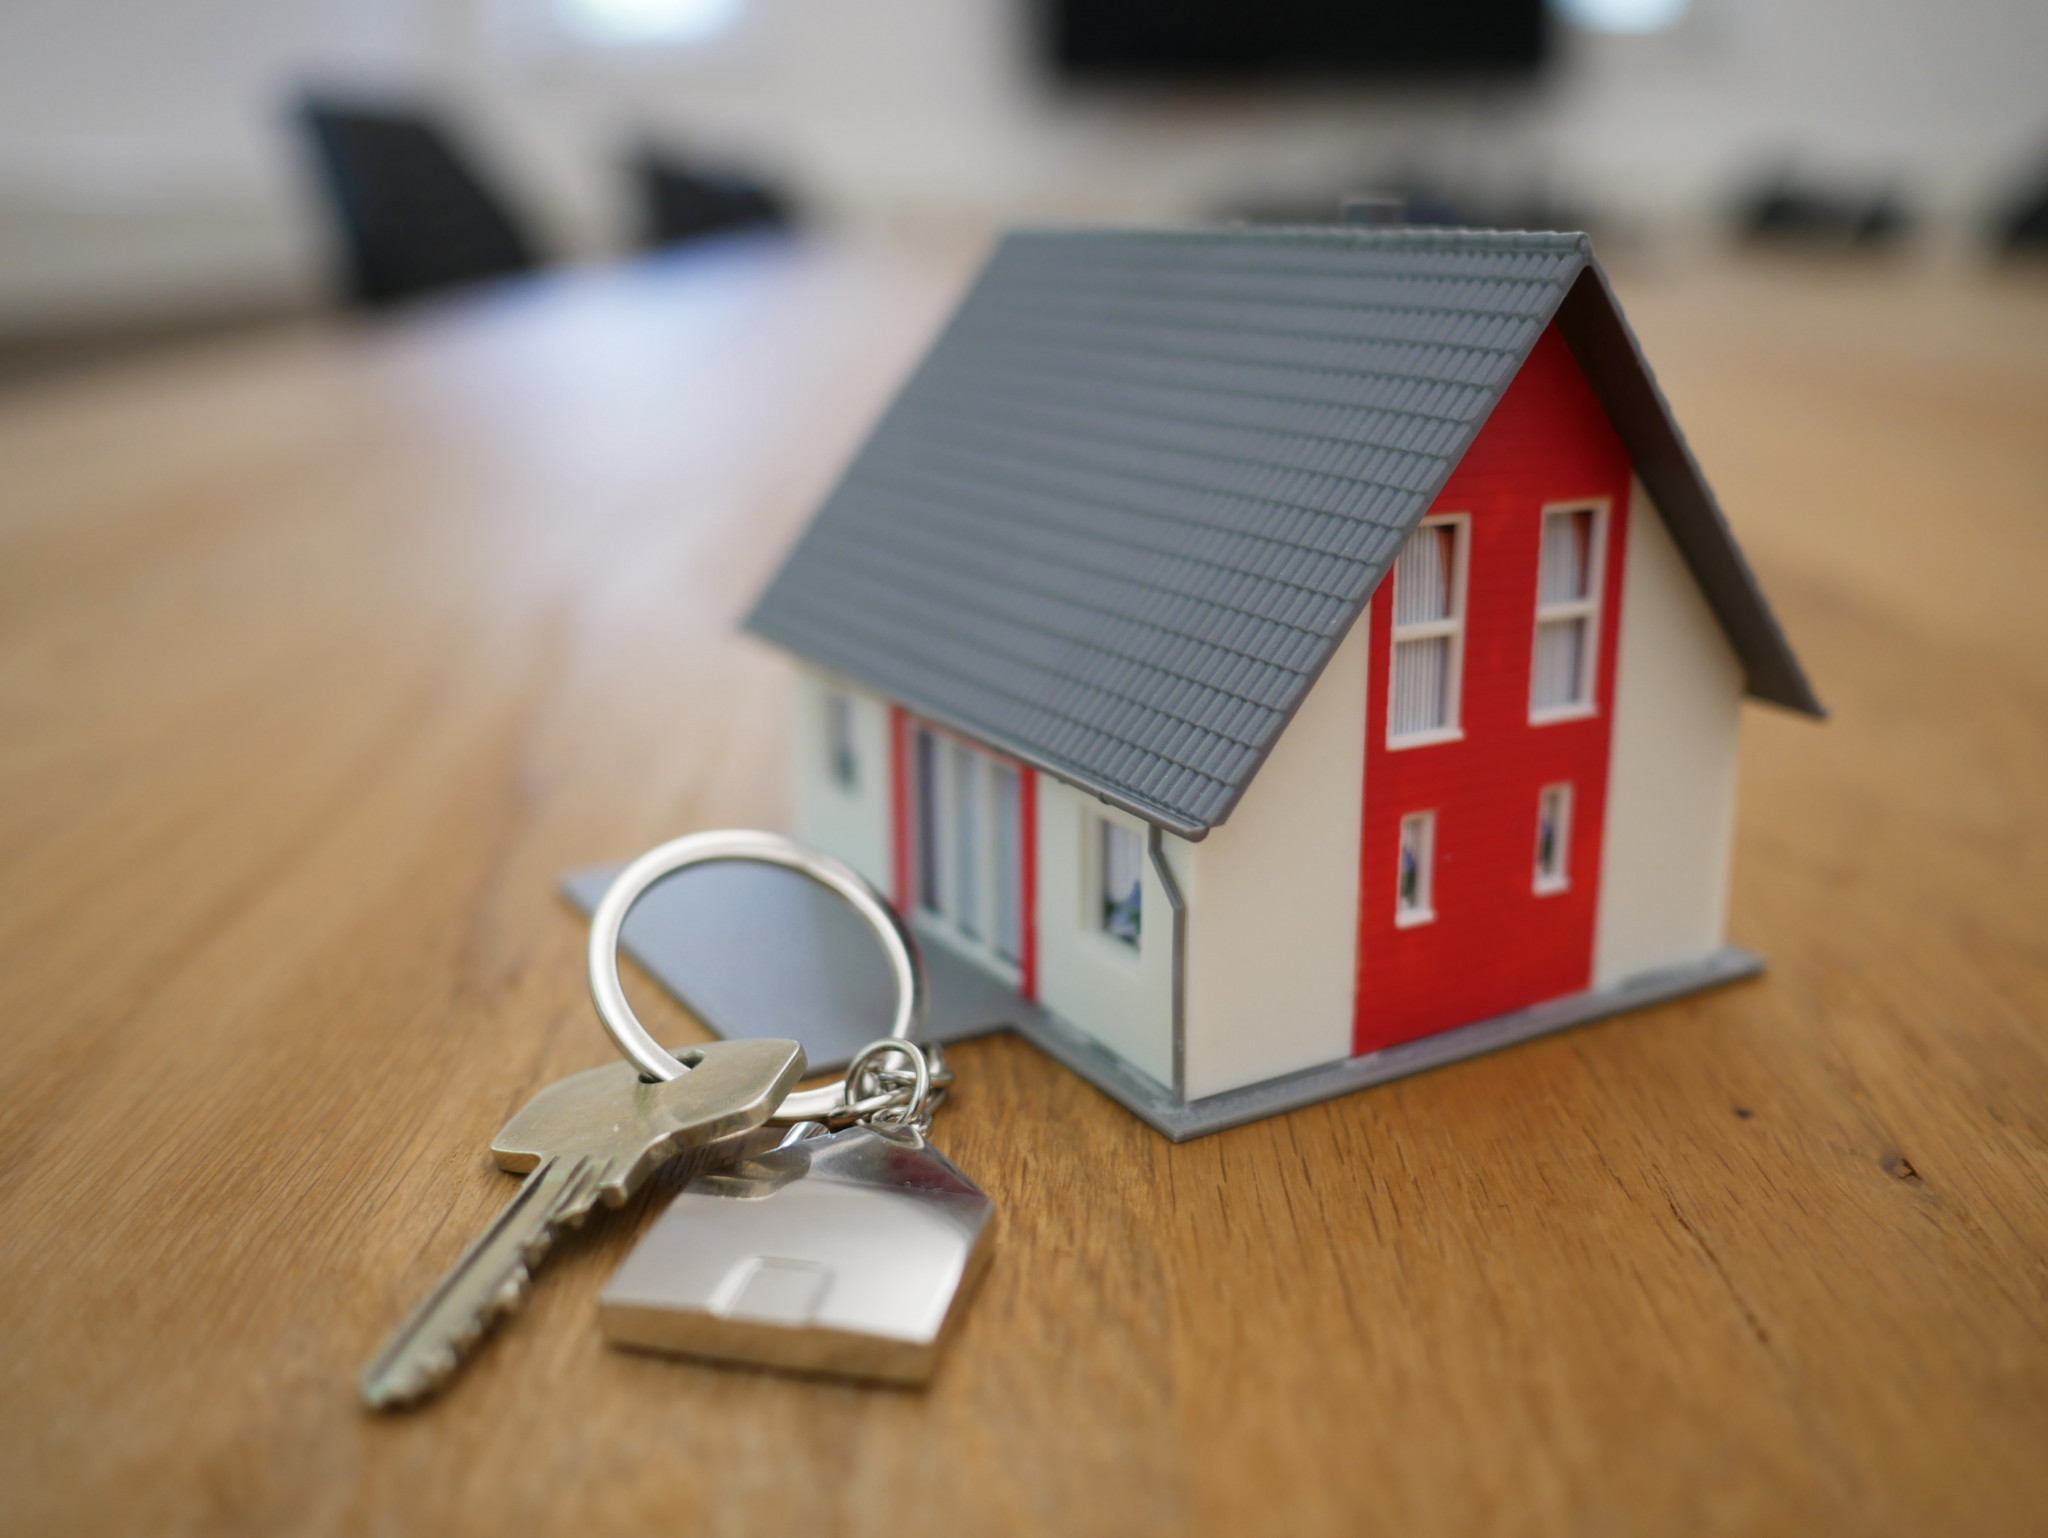 Thinking of moving house and selling a property?